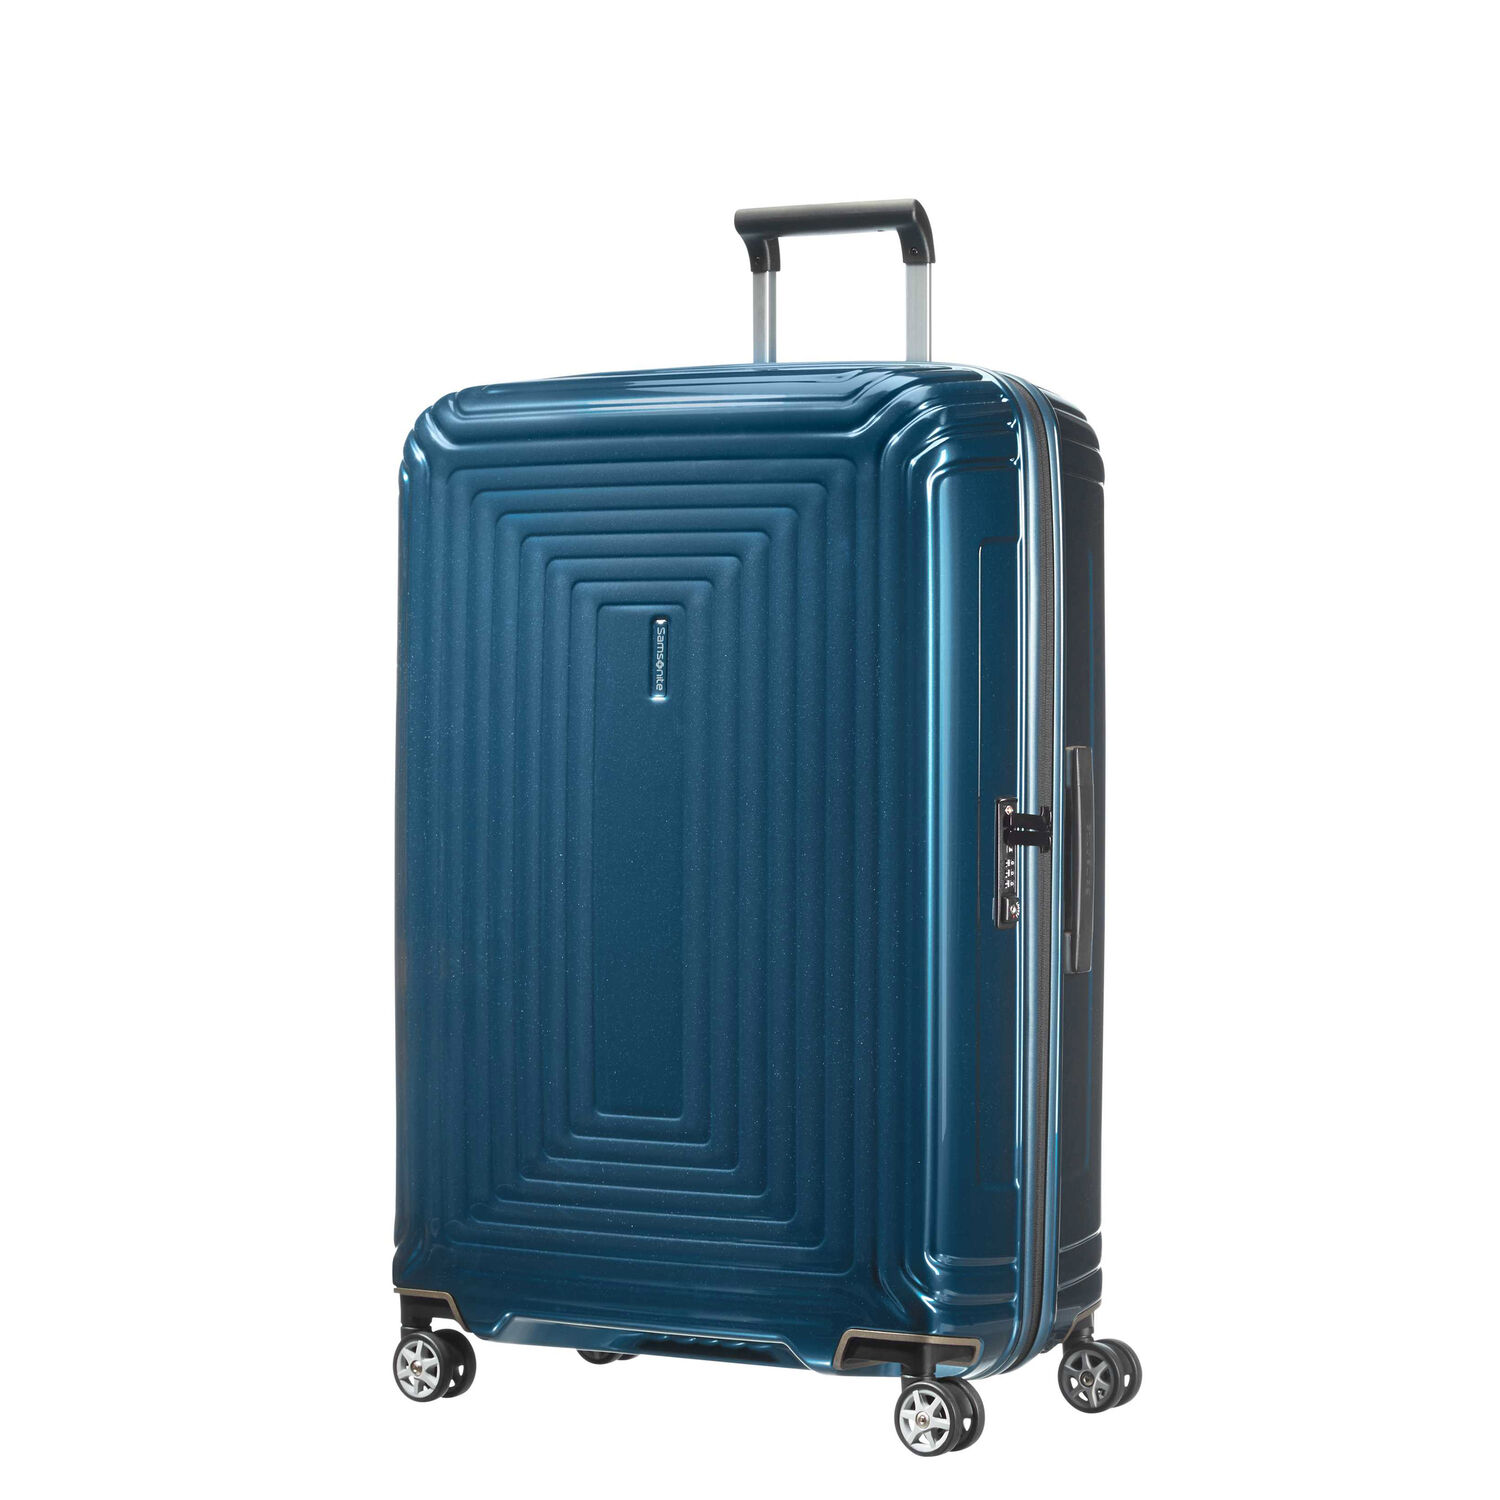 Samsonite Neopulse Bleu